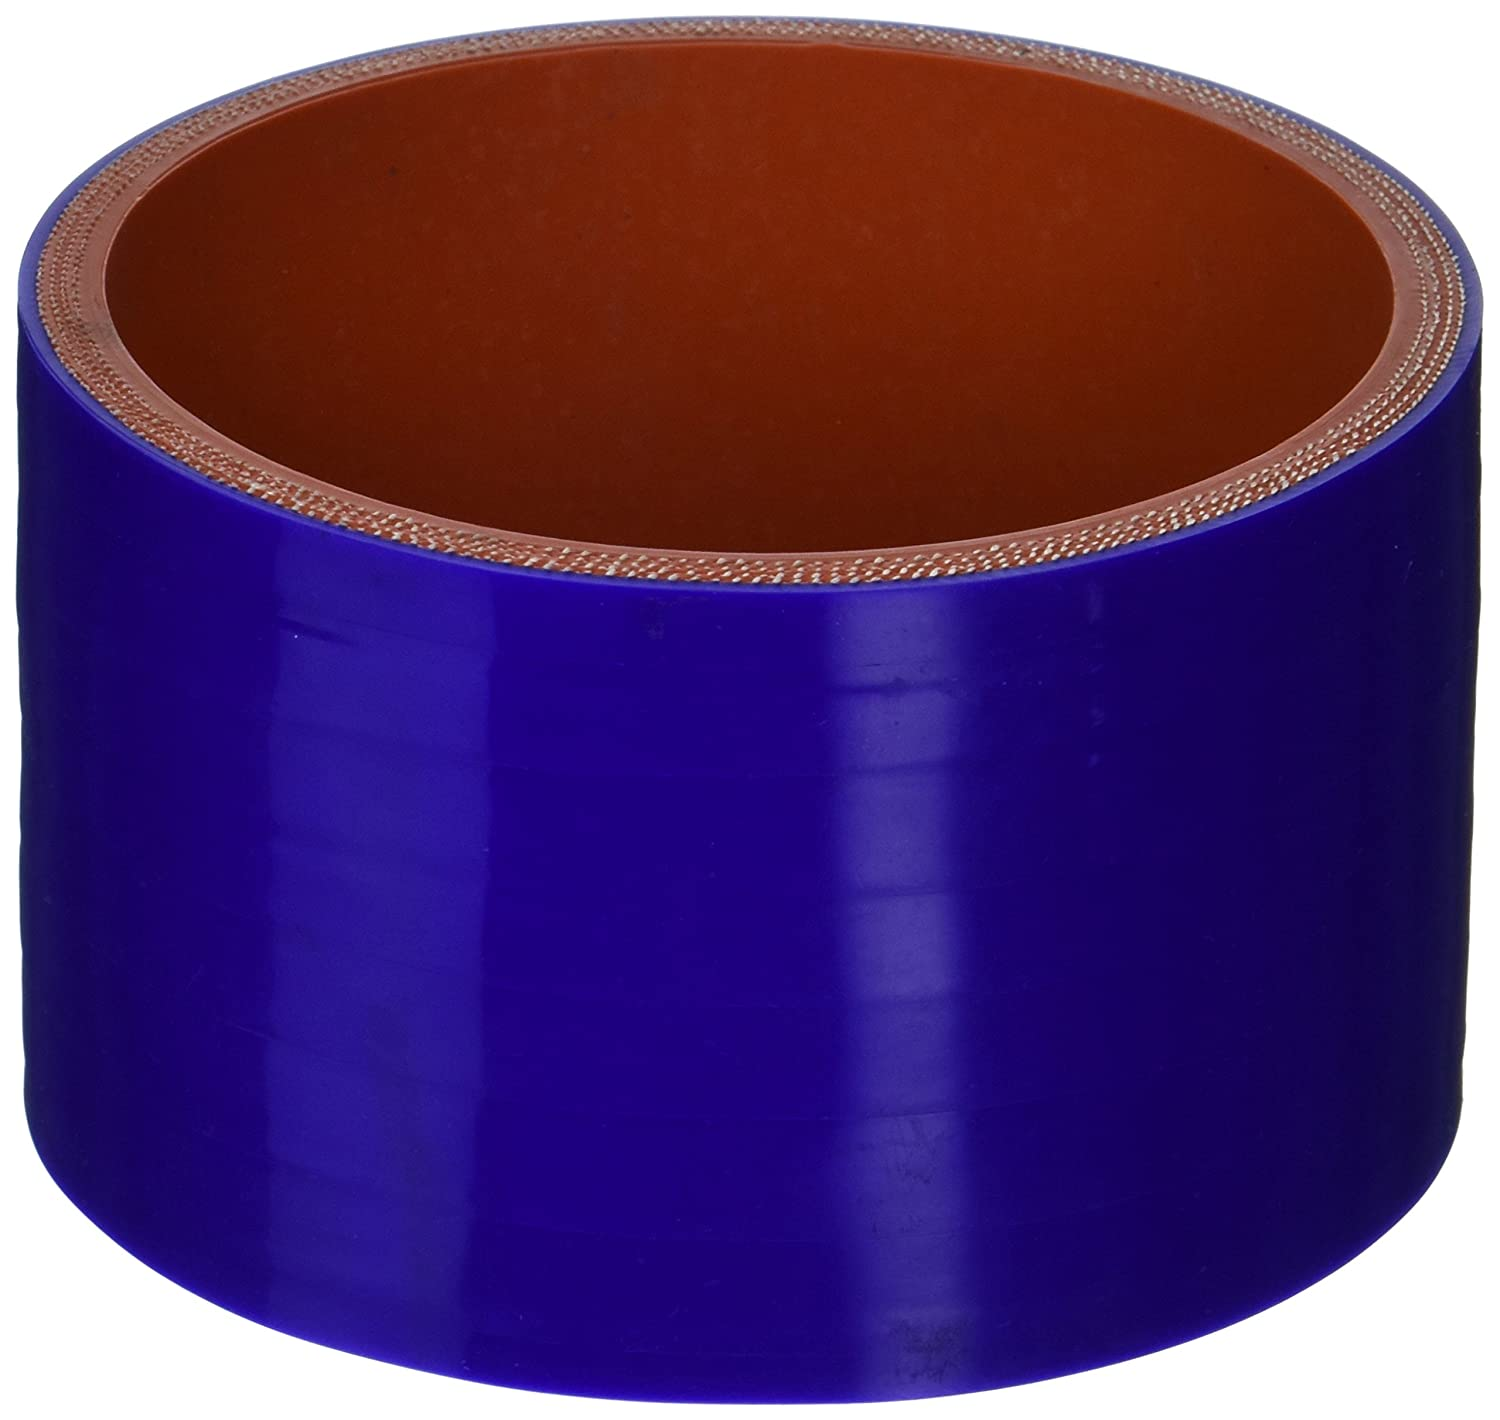 HPS HTSC-450-BLUE Silicone High Temperature 4-ply Reinforced Straight Coupler Hose, 65 PSI Maximum Pressure, 3' Length, 4-1/2' ID, Blue 3 Length 4-1/2 ID HPS Silicone Hoses